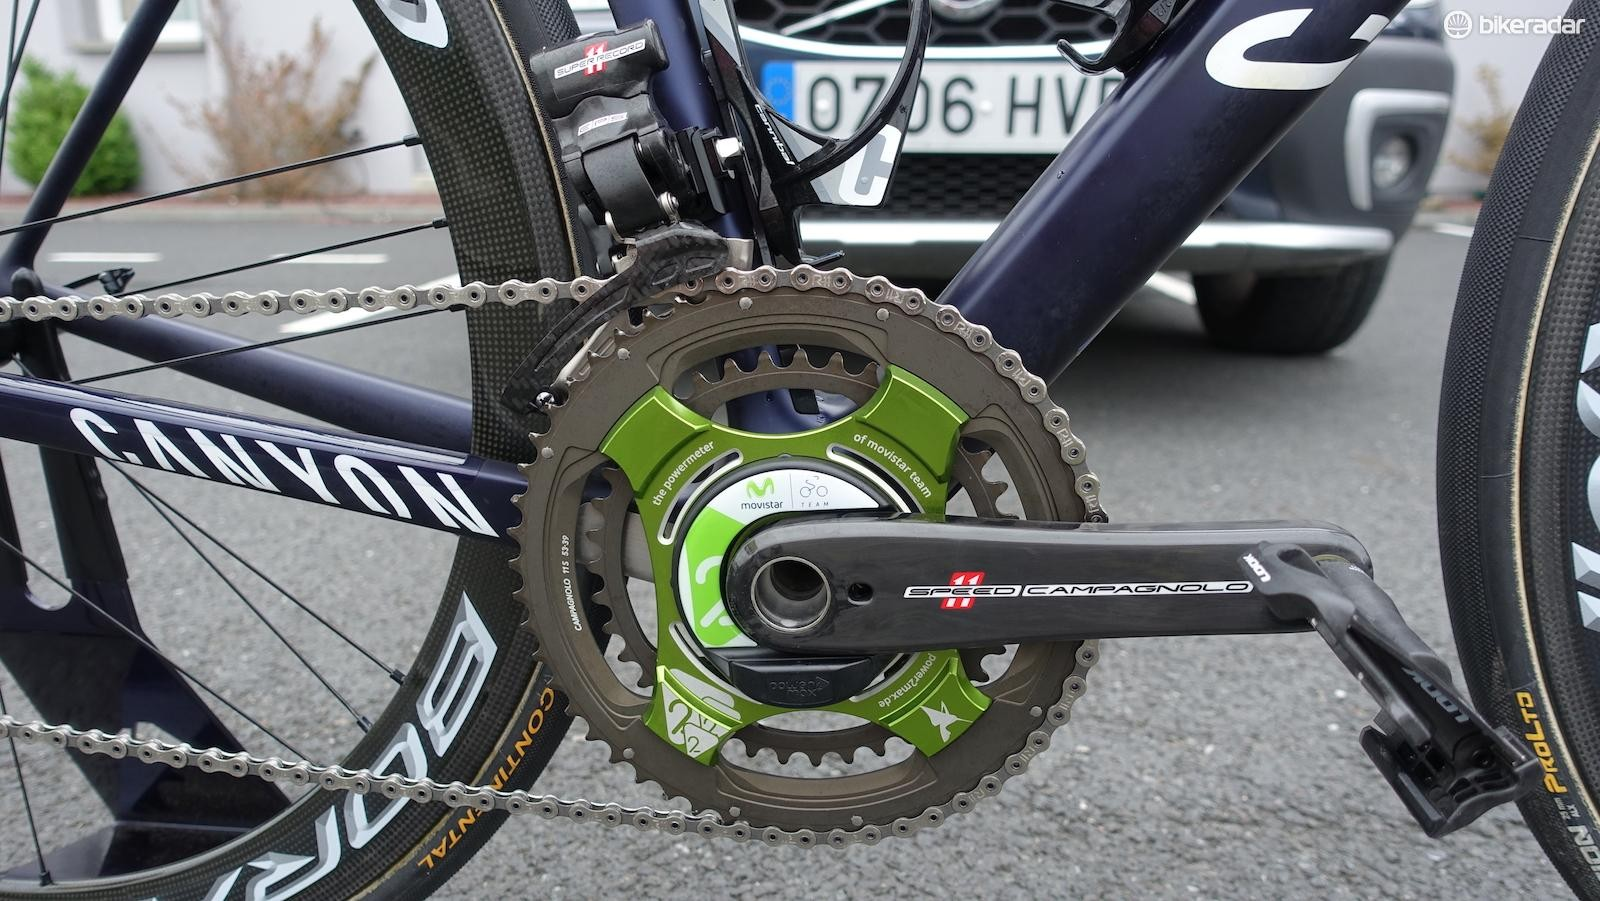 German power meter manufacturer Power2Max is a Movistar sponsor. Quintana had standard 53/39 chainrings mounted for the start of the Tour